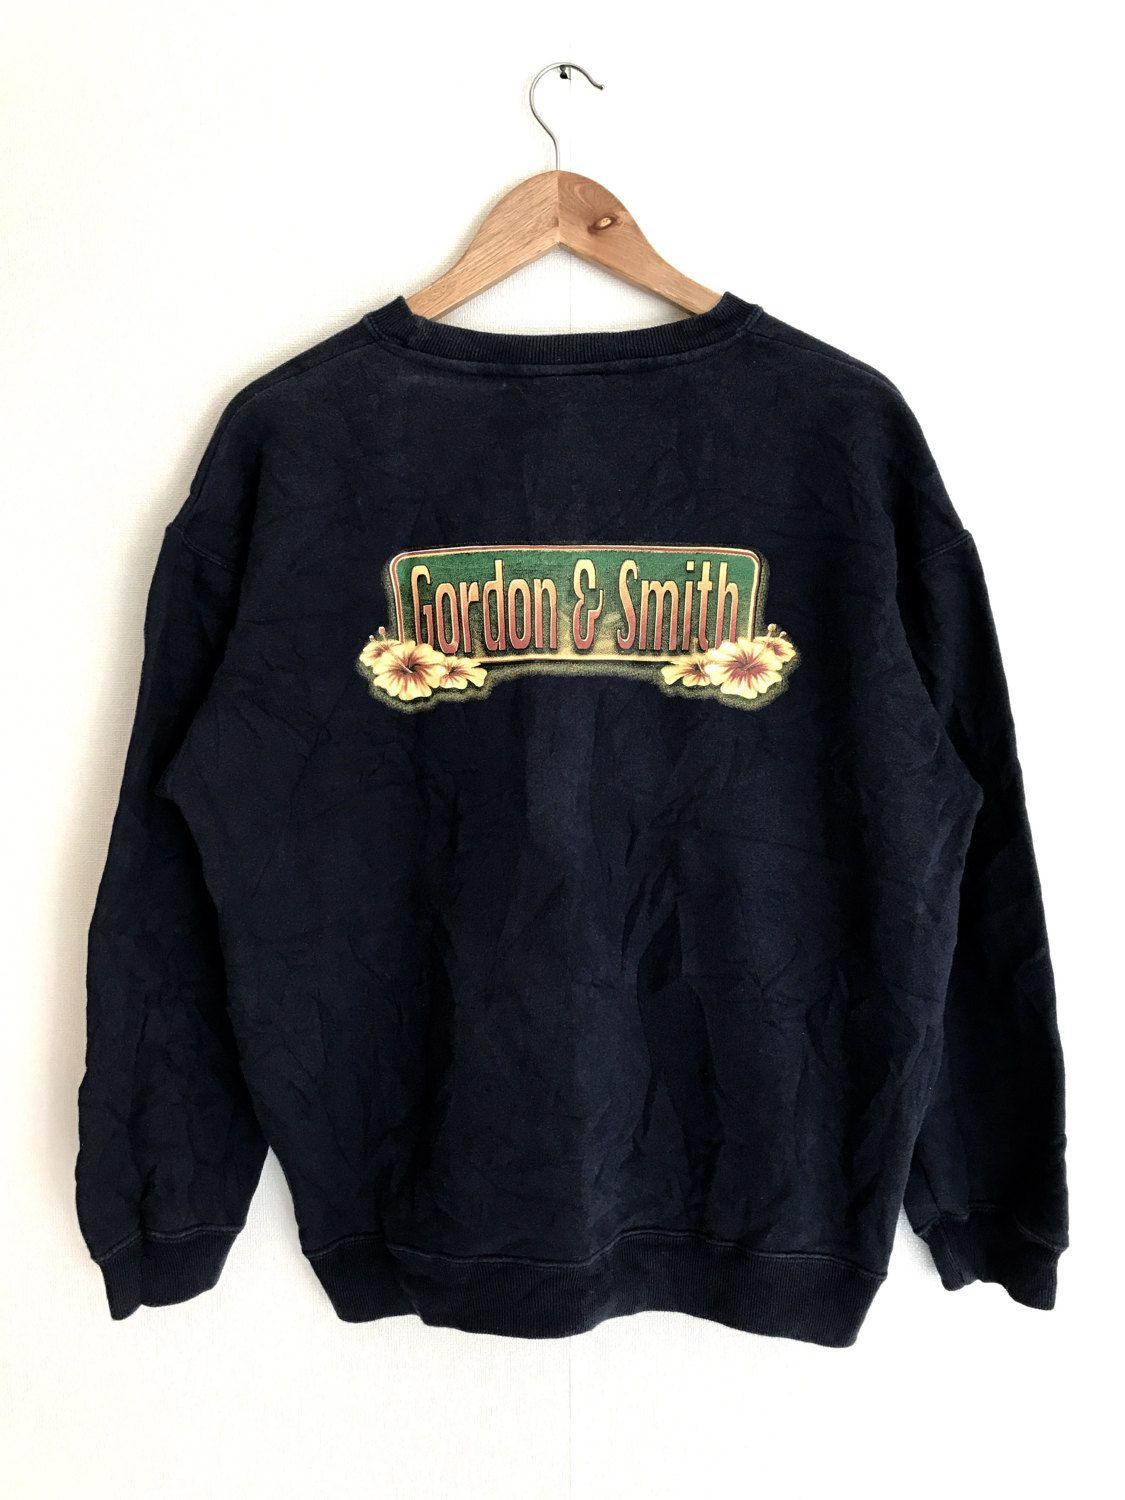 8c9ba76002d4 Sale Rare !! Vintage Surf Clothing Gordon & Smith Floral designs  sweatshirts 90's skate surf fashion style Dark Blue by Psychovault on Etsy